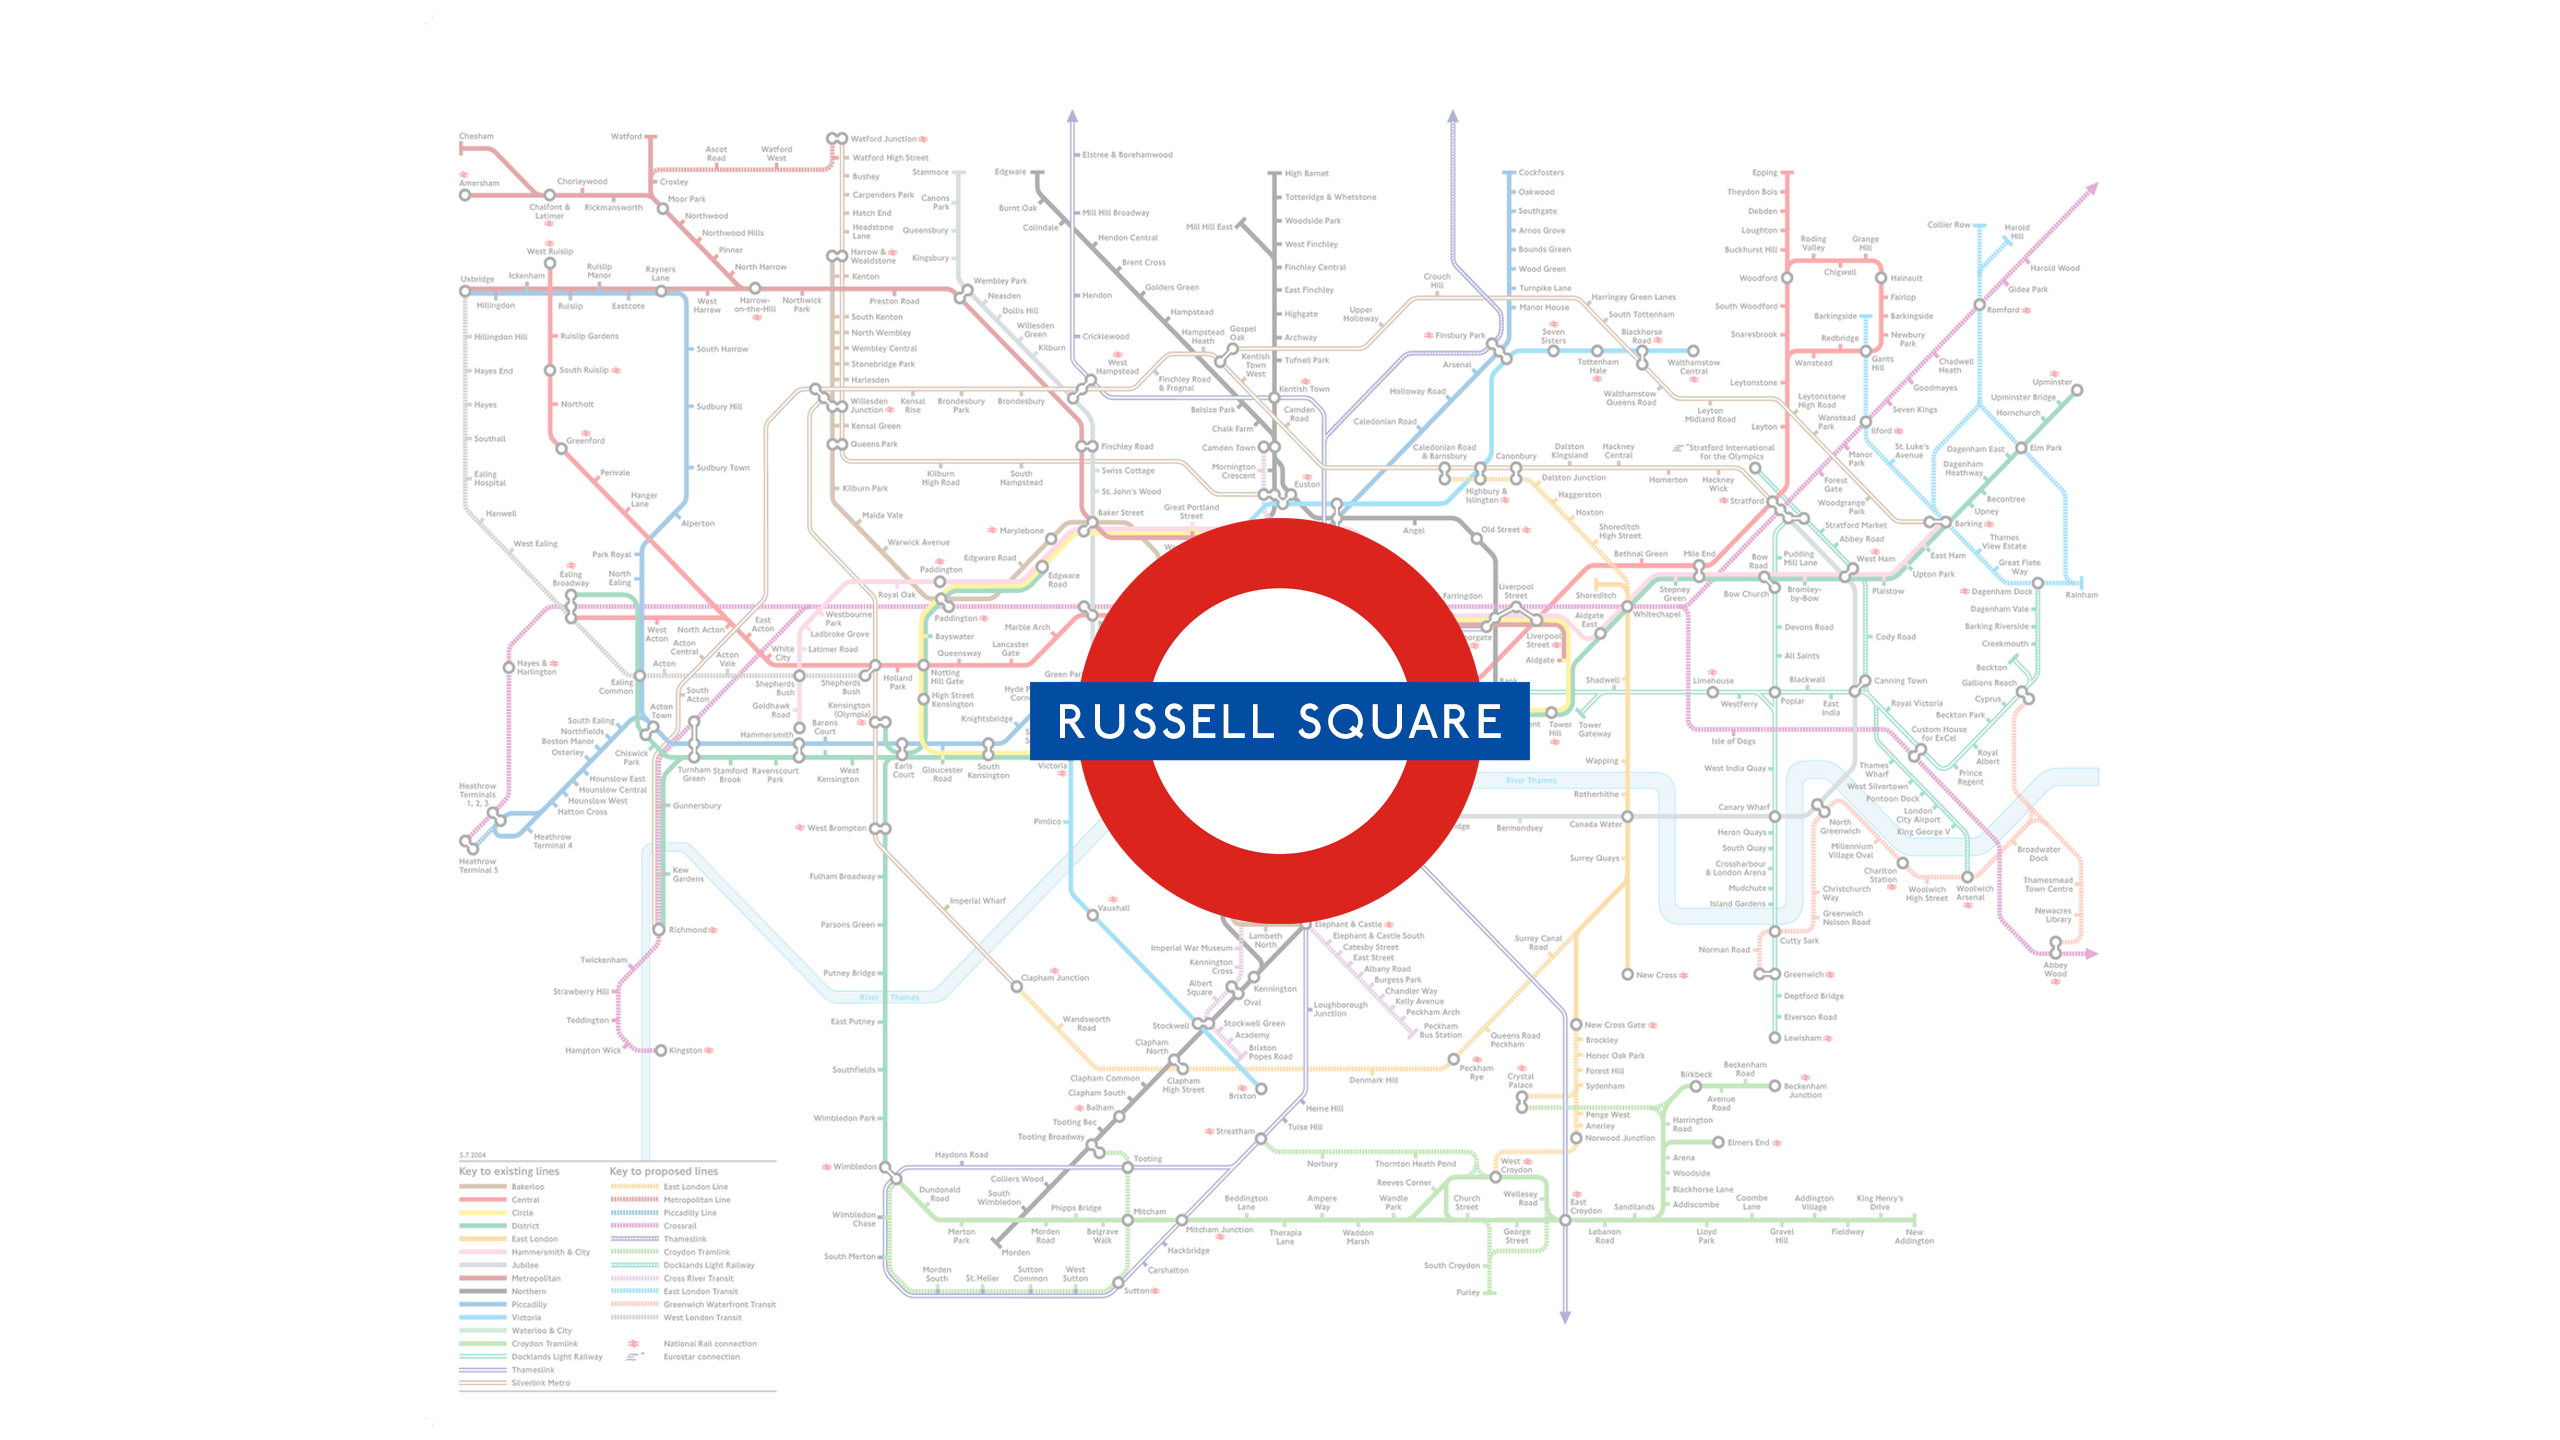 Russell Square (Map)